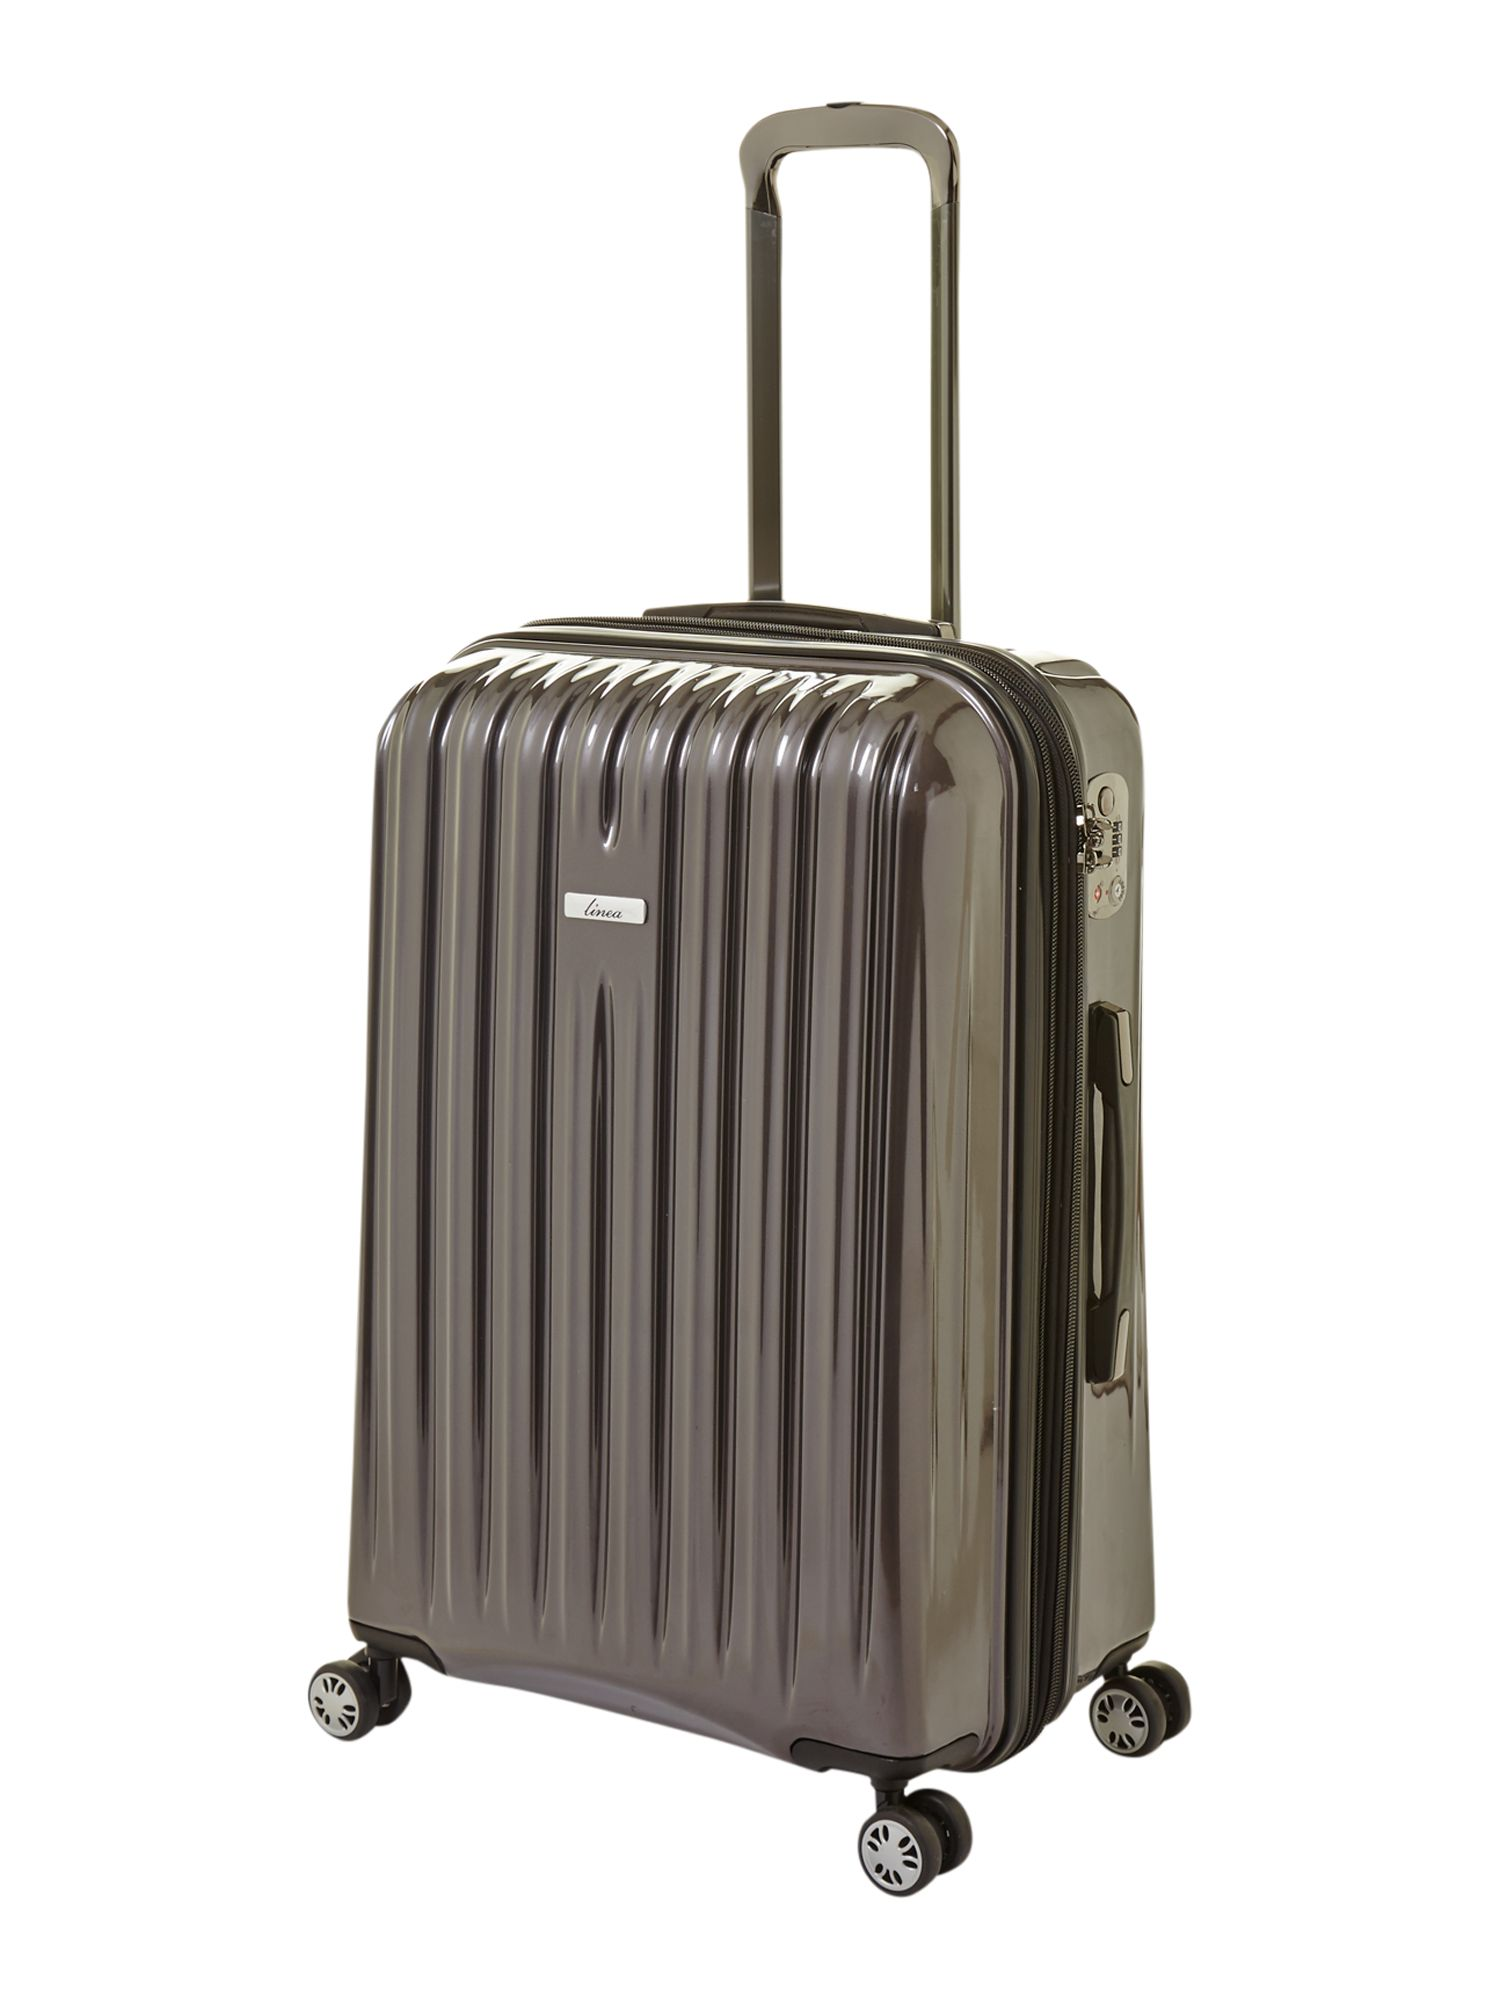 Titanium dark grey luggage range